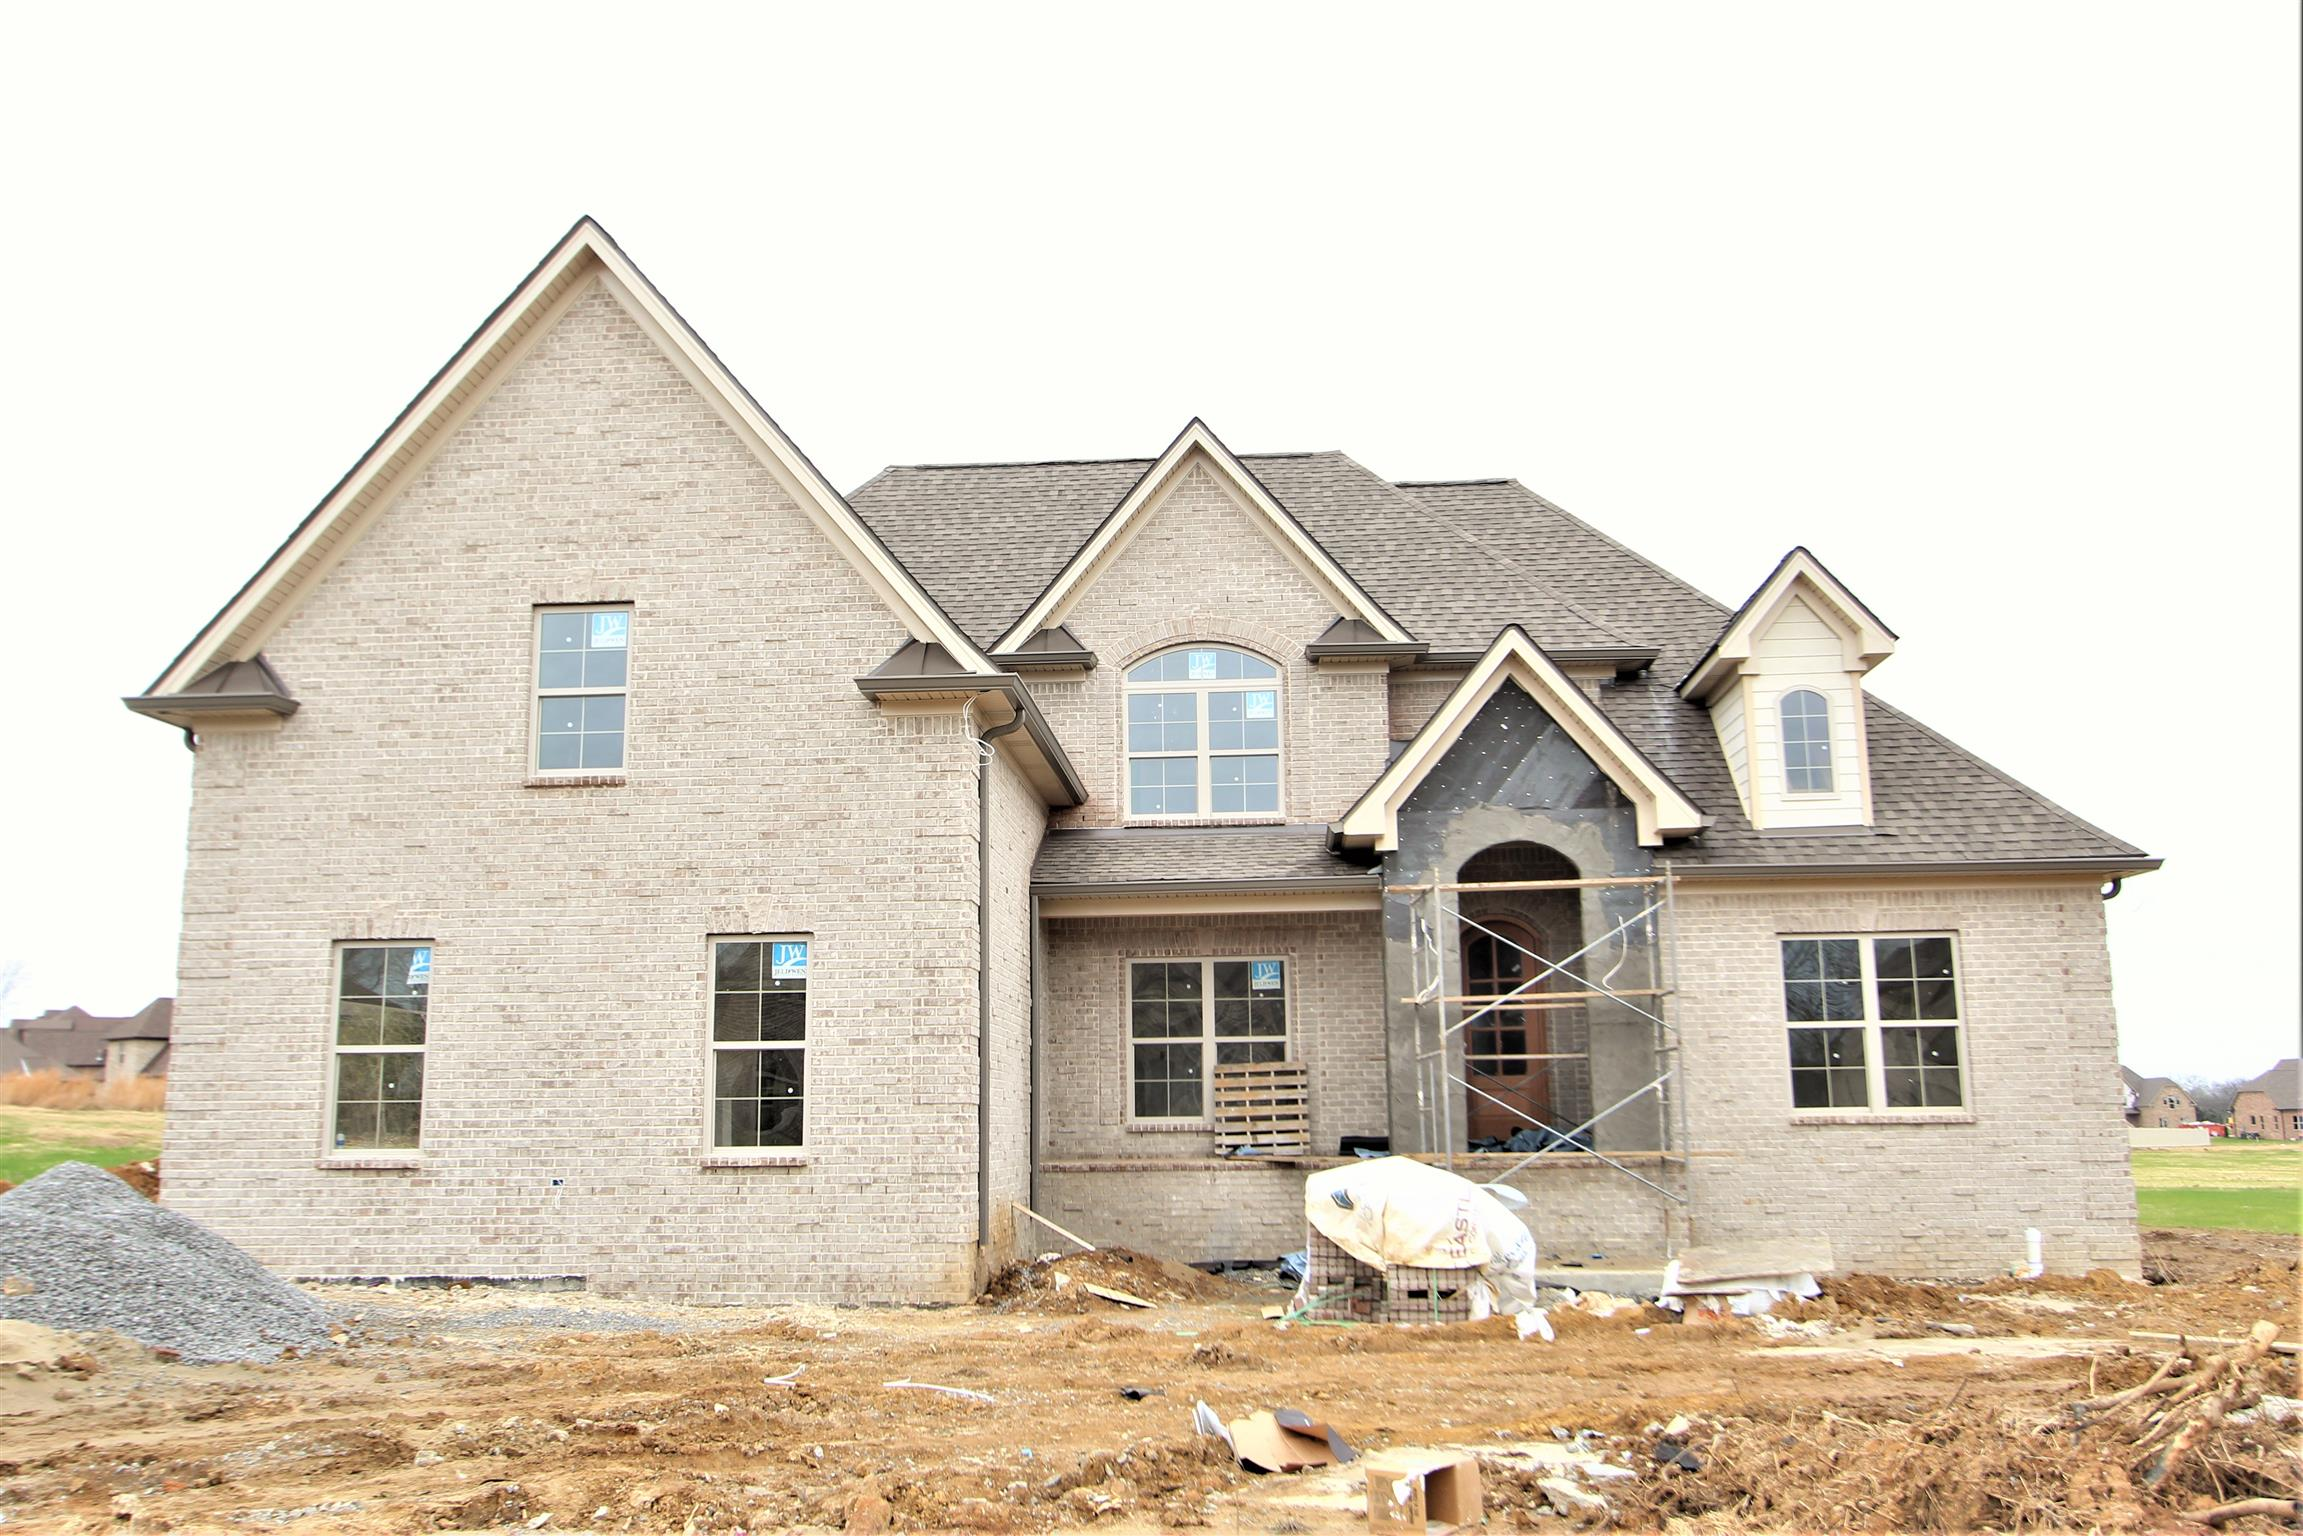 68 Larkspur Lane #68-C, Lebanon in Wilson County County, TN 37087 Home for Sale